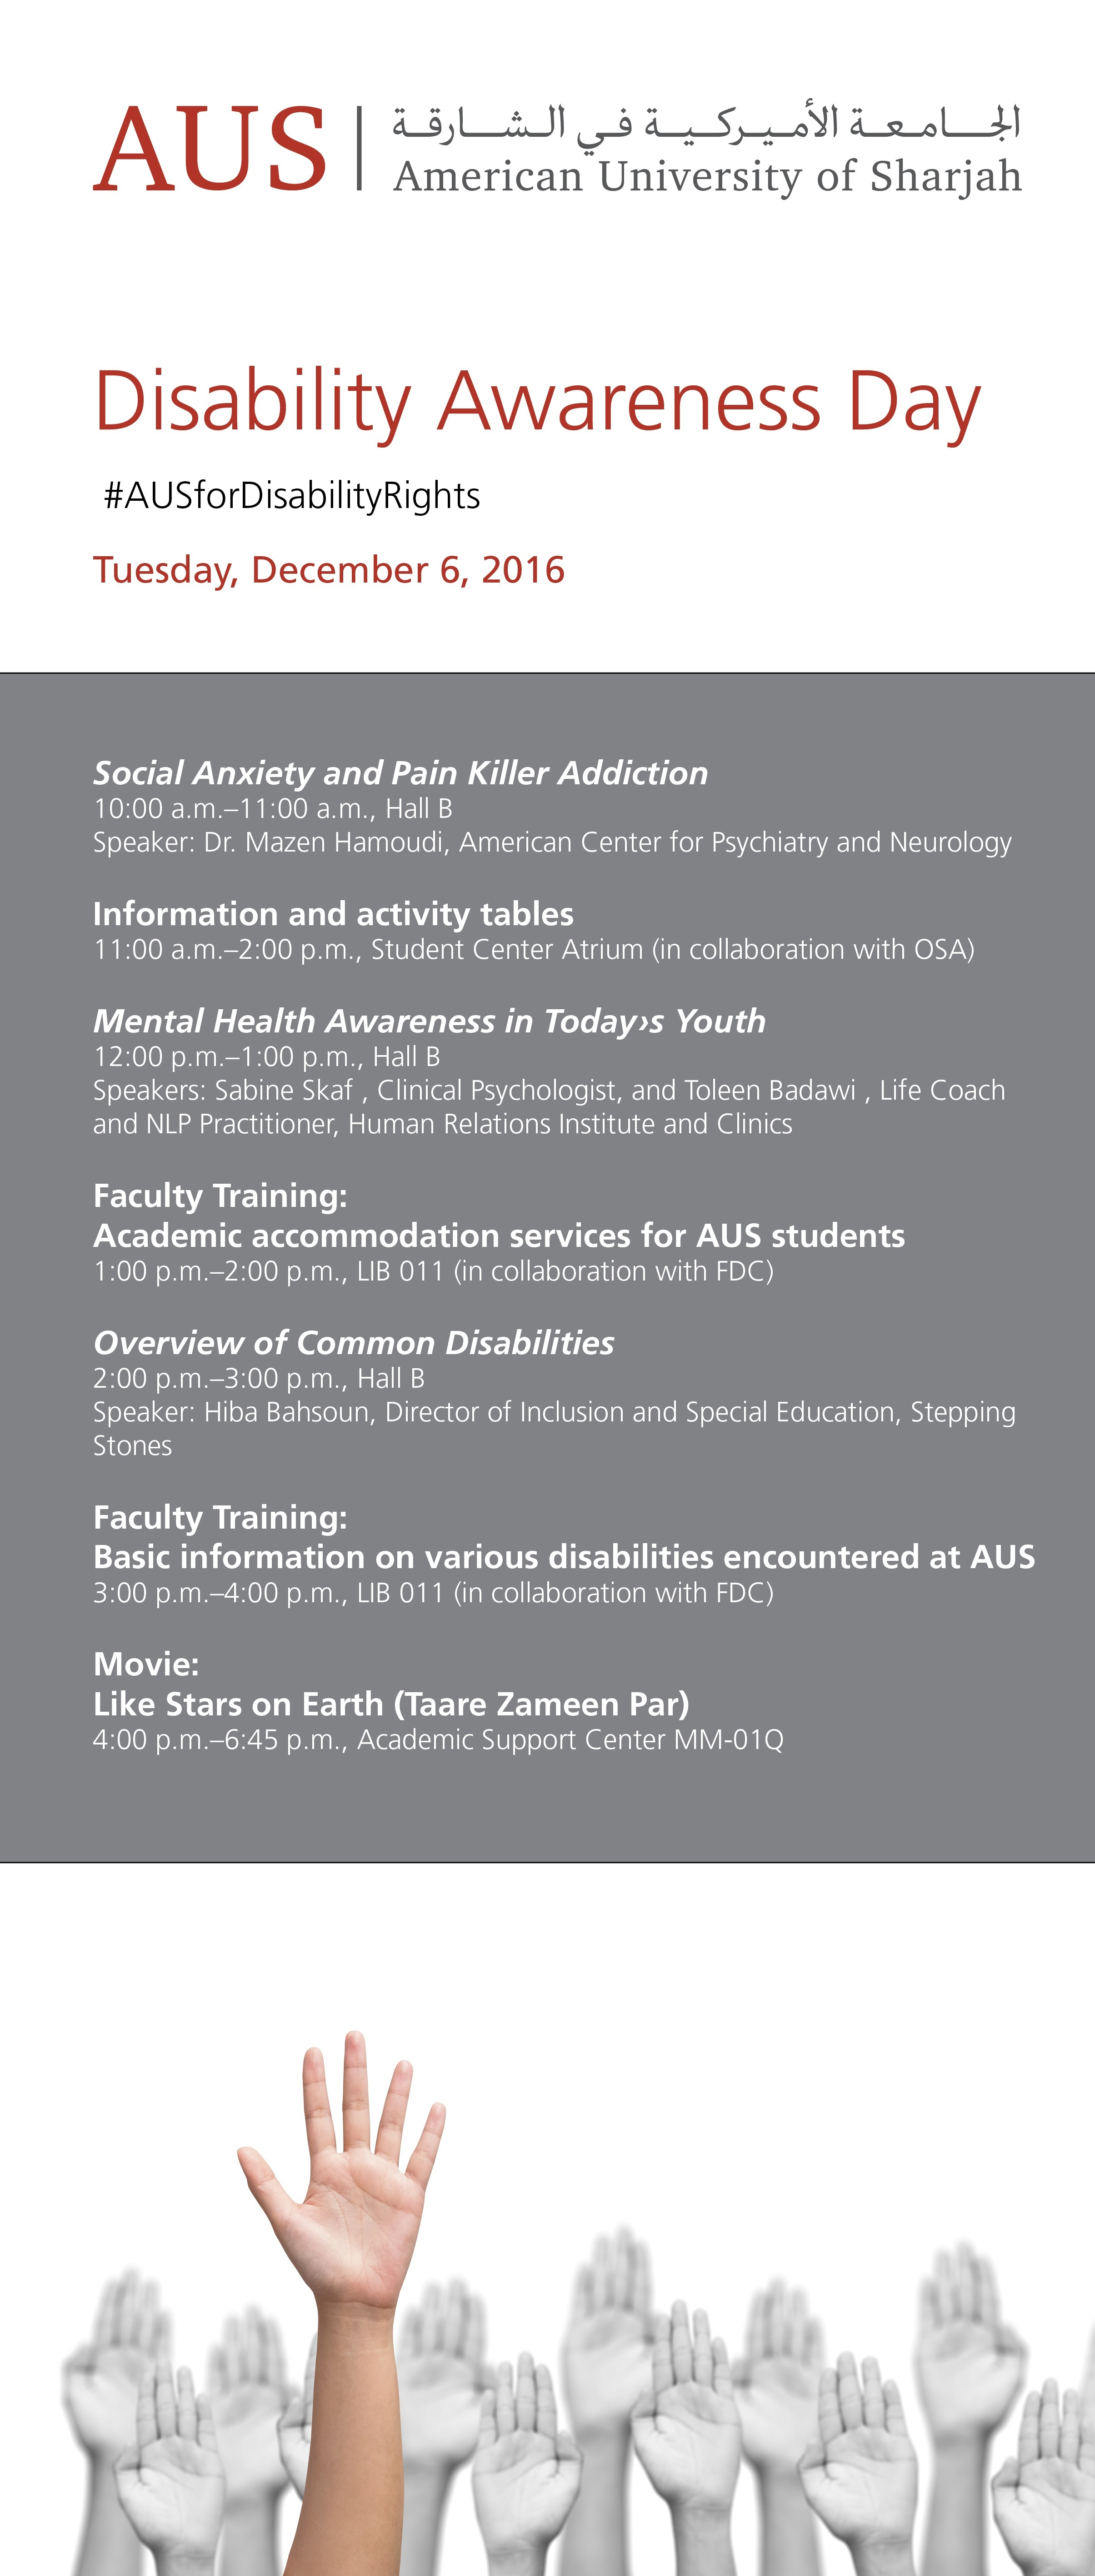 American University of Sharjah Disability Awarness Day 2016 1-schedule.jpg